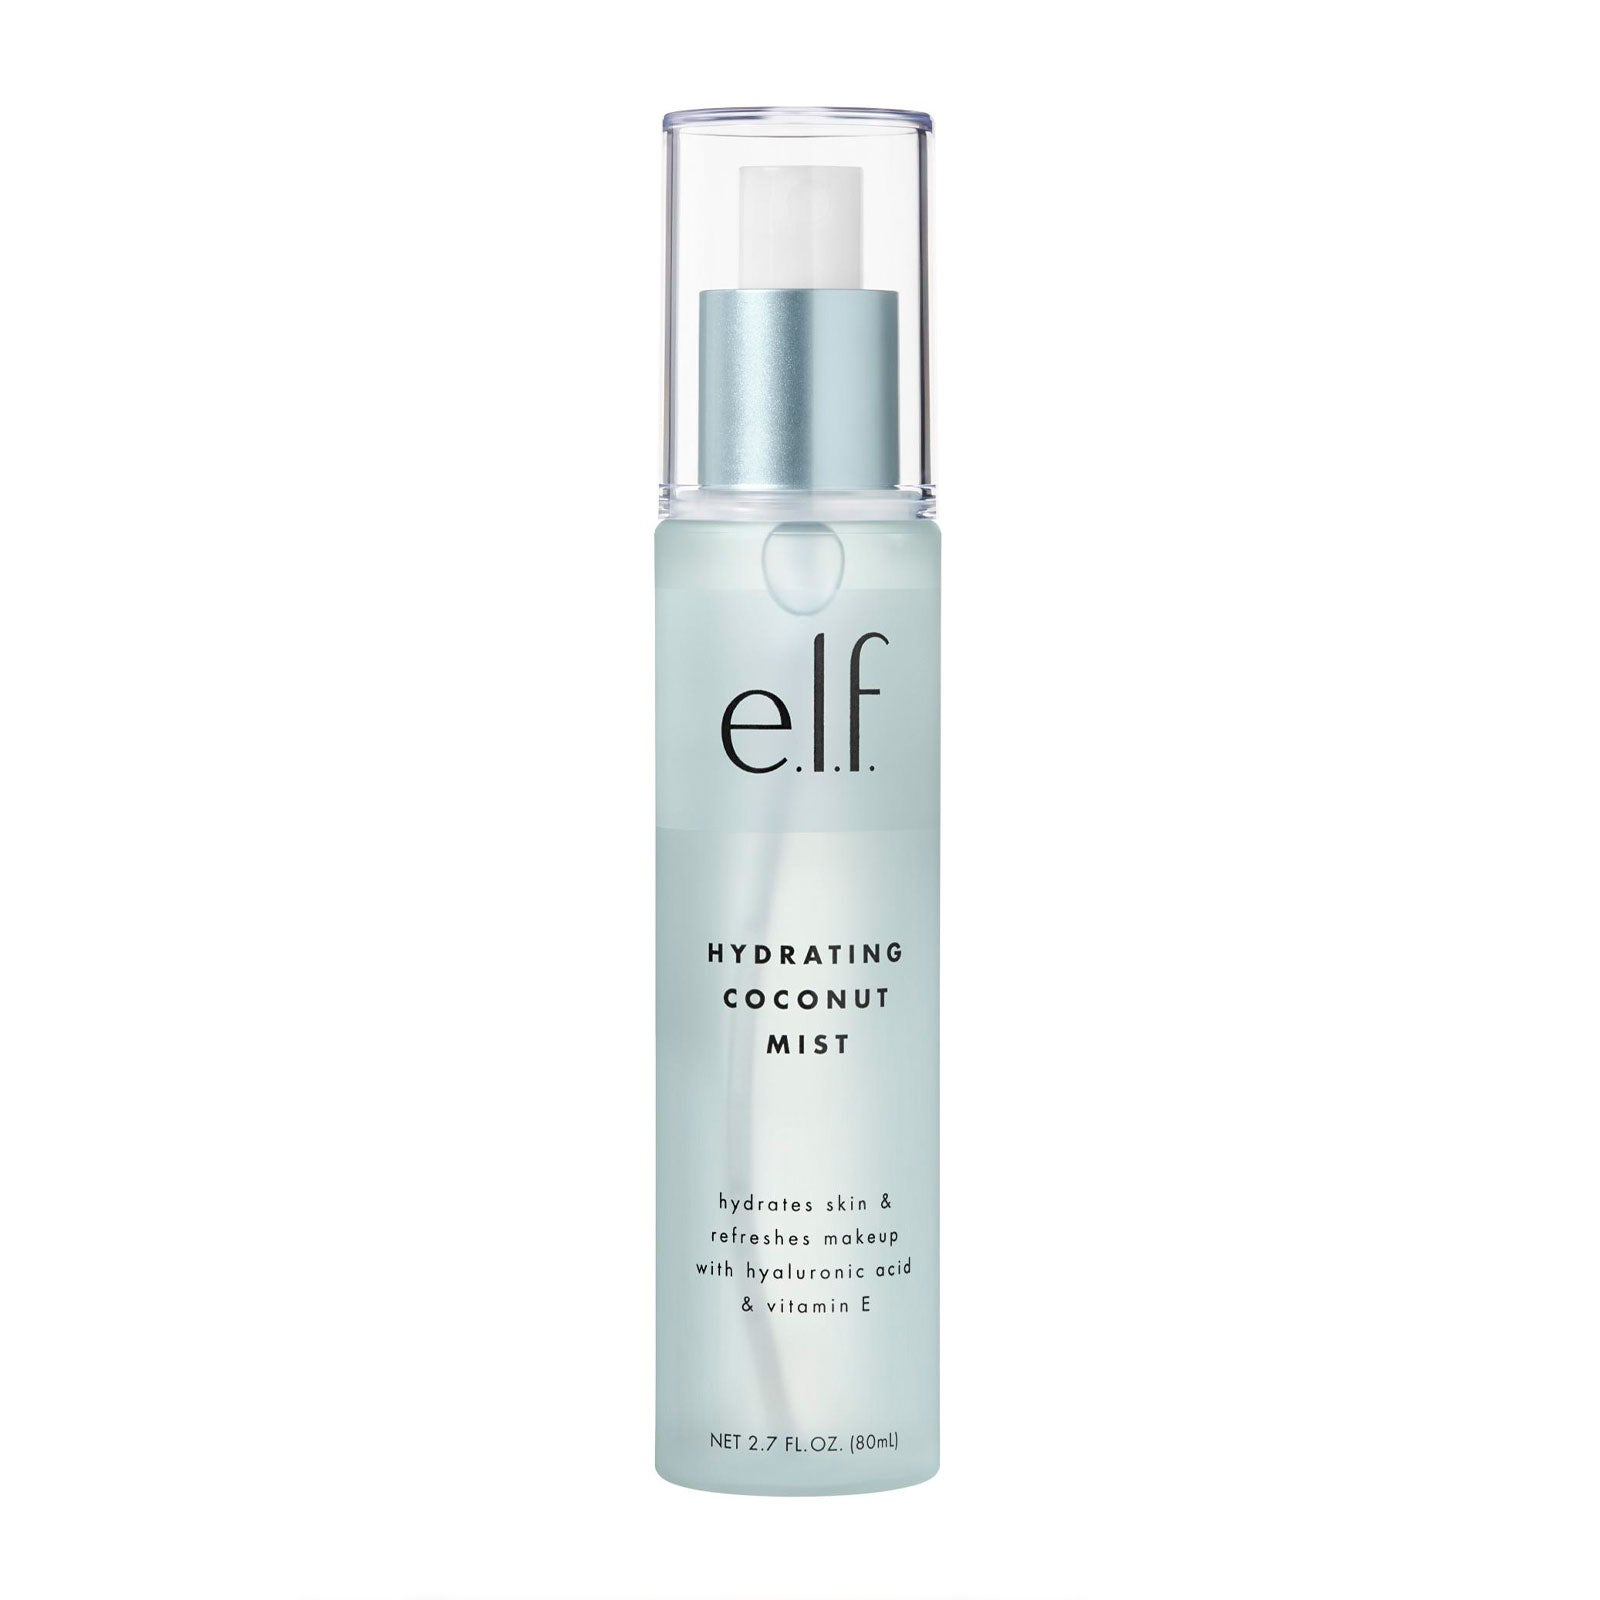 e.l.f. Hydrating Coconut Mist 80ml